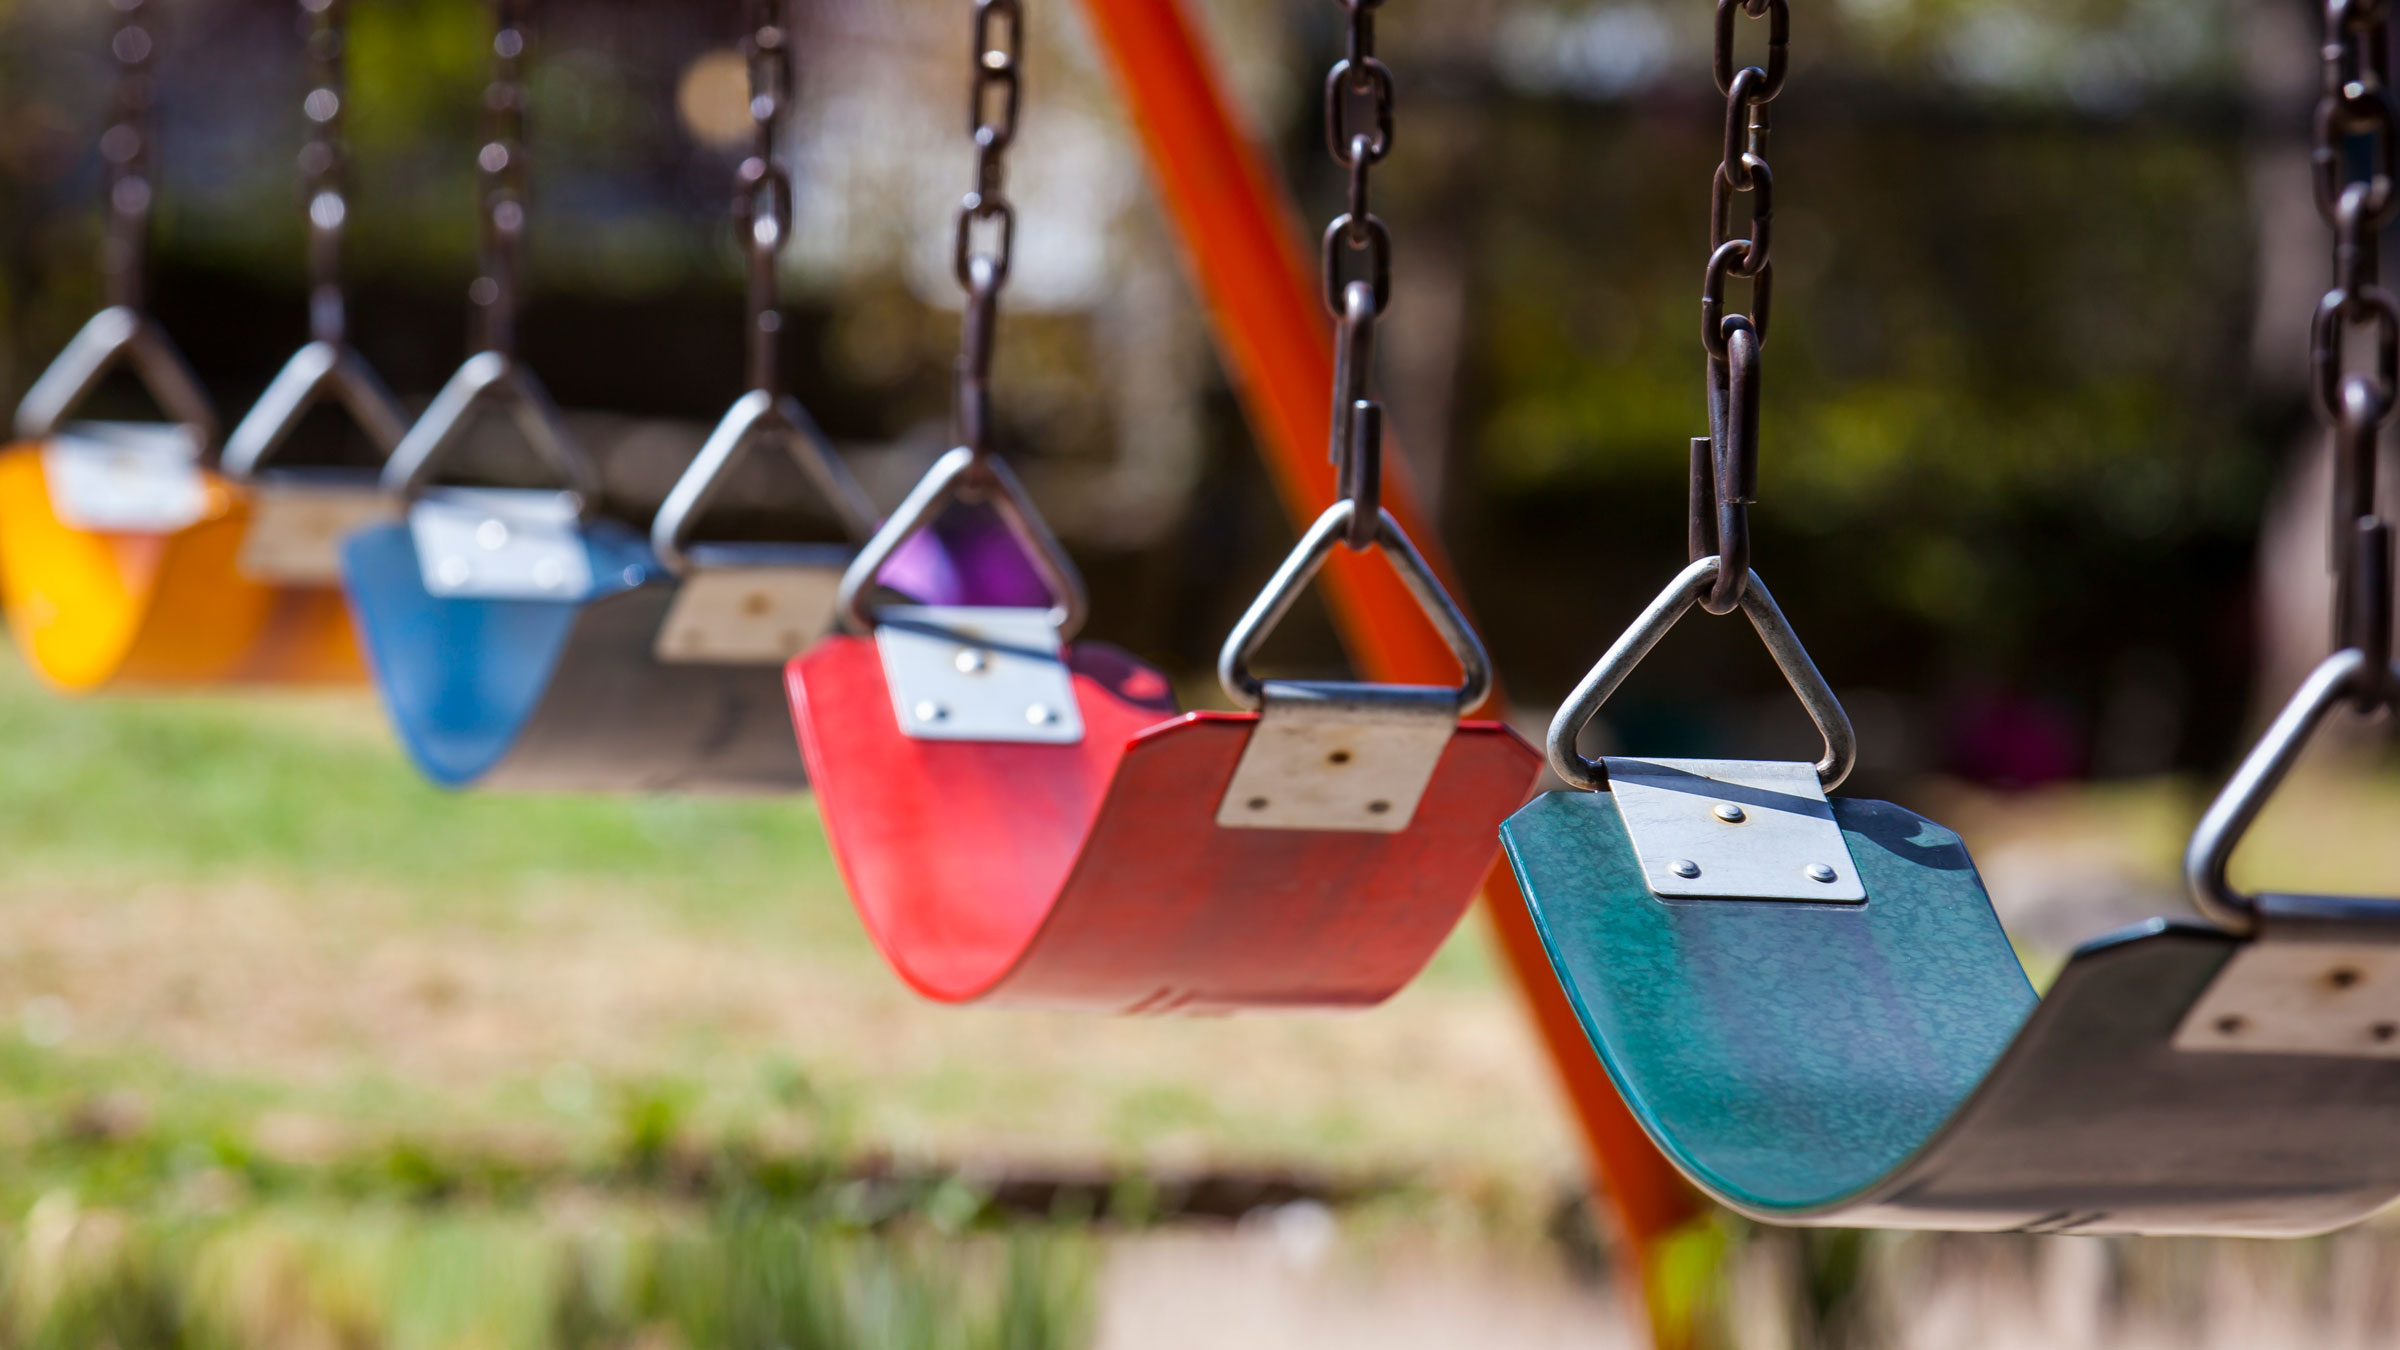 Swings at playground.